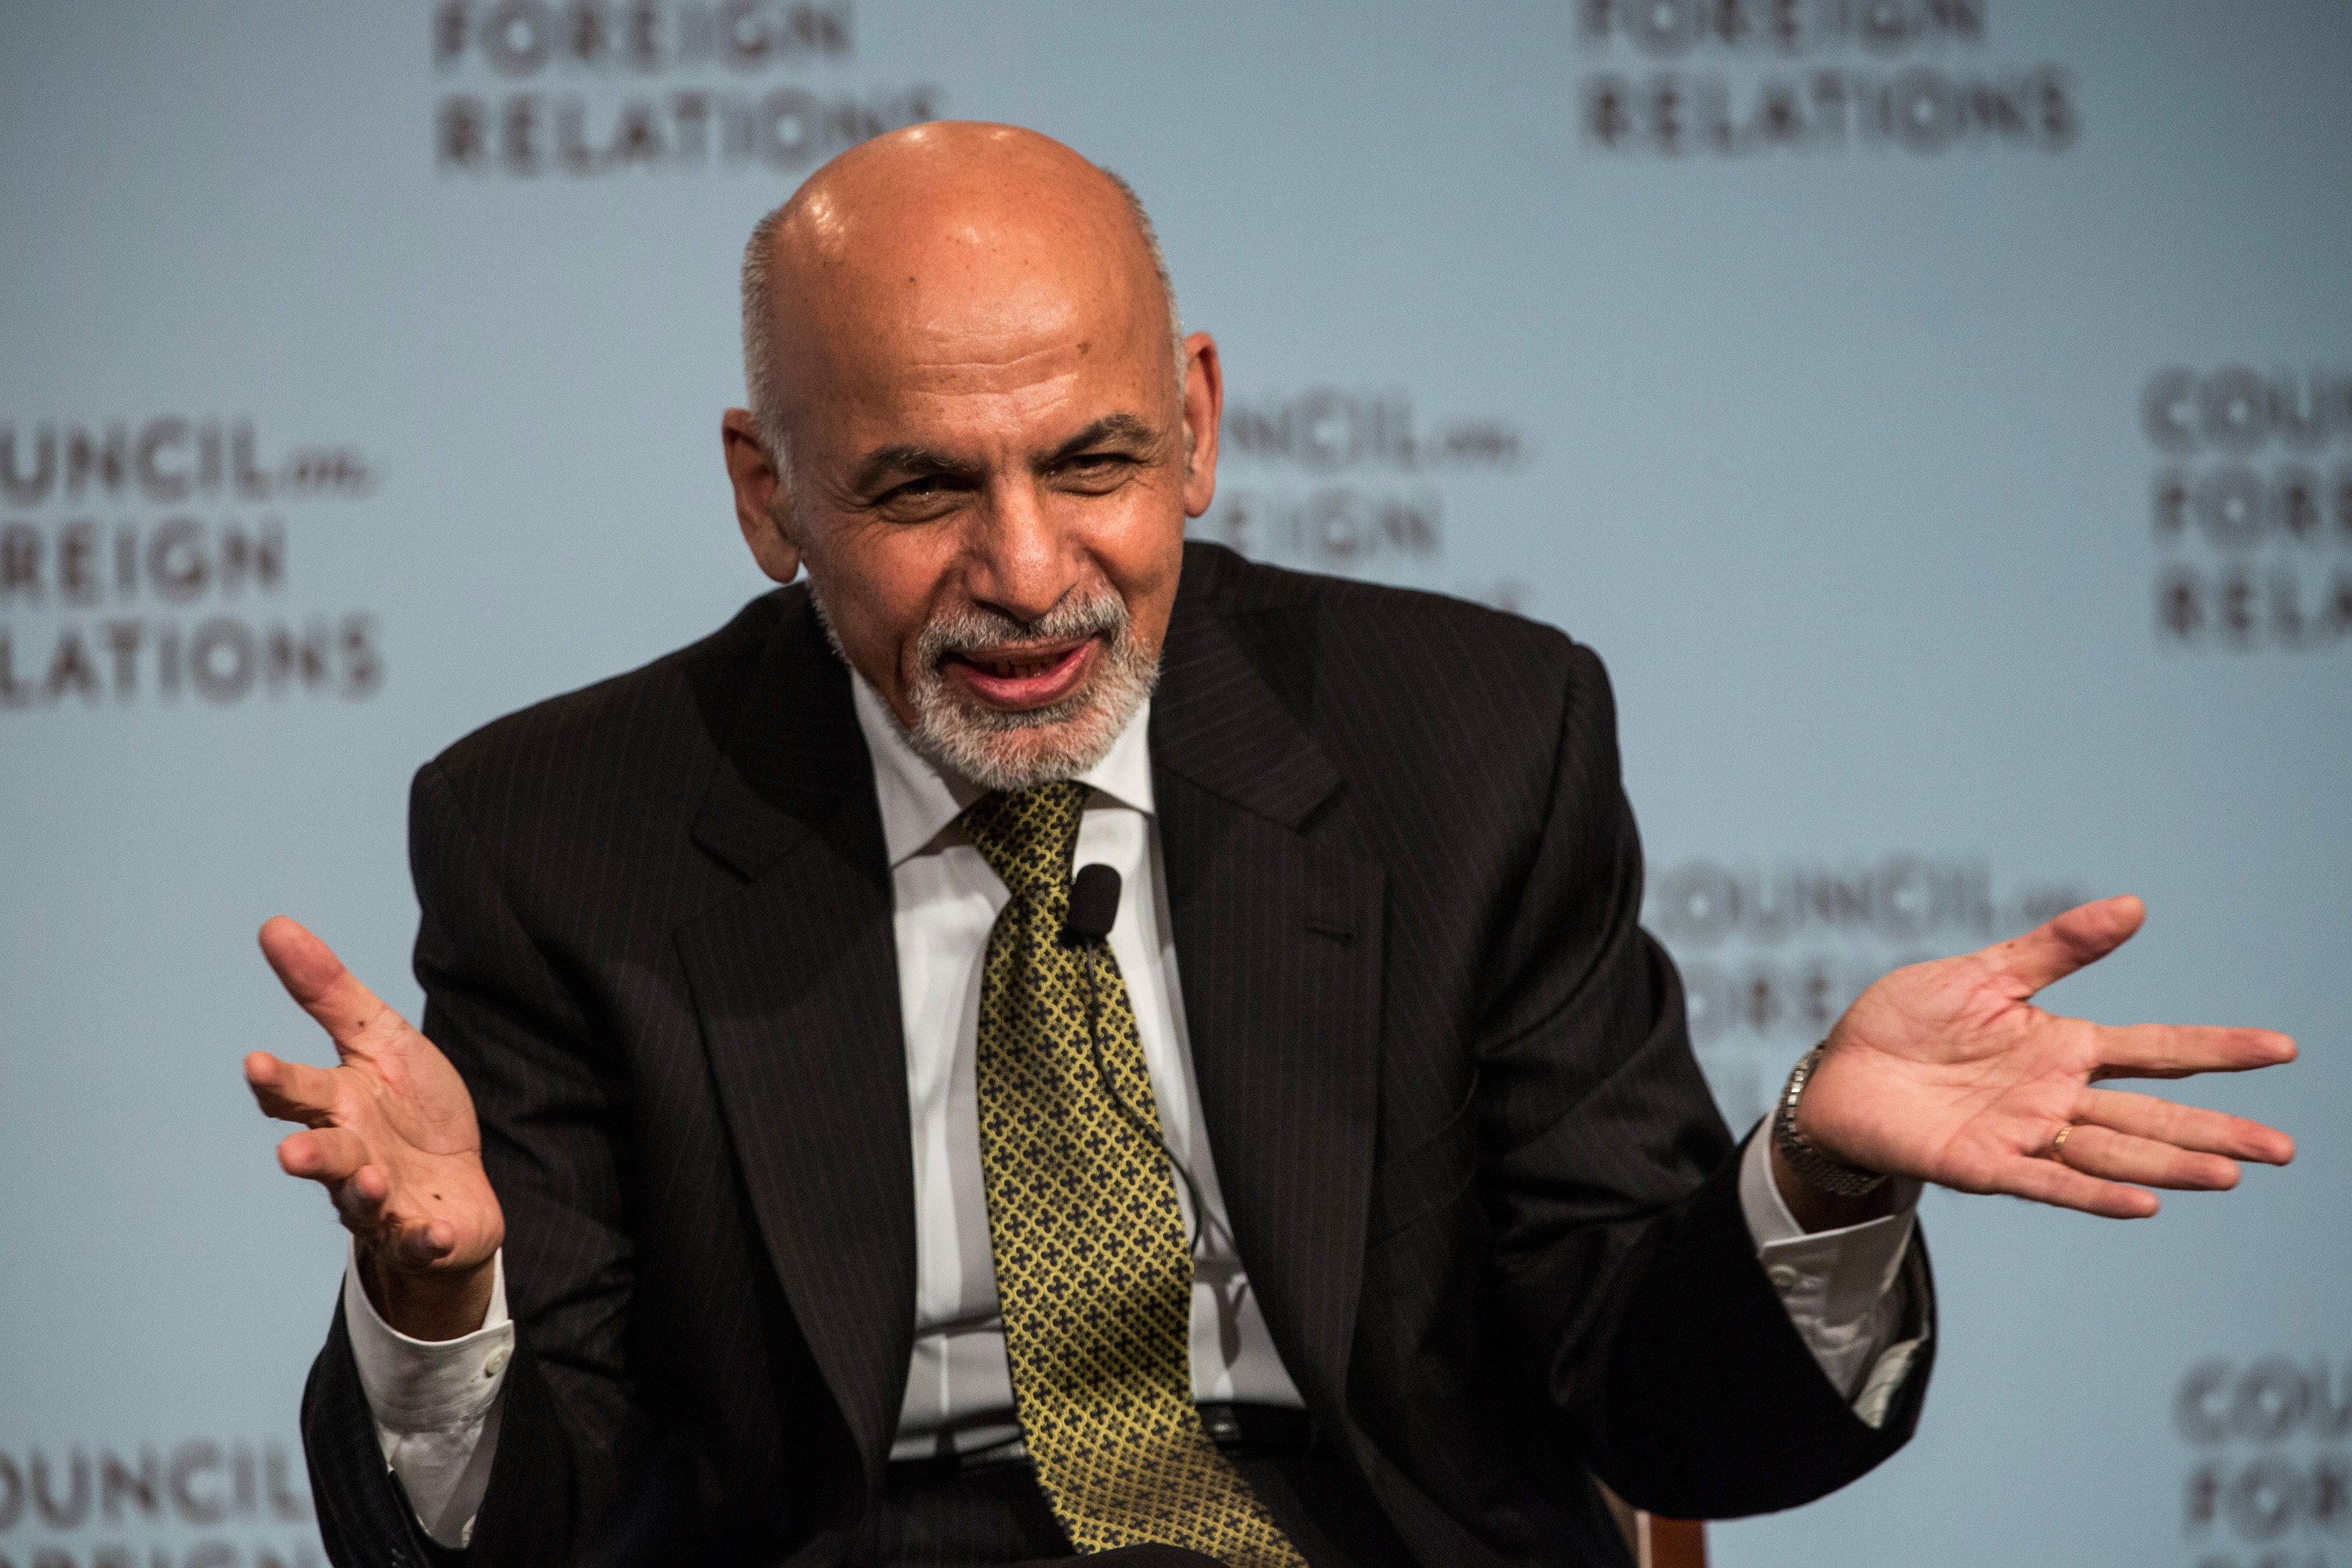 Ashraf Ghani, President of Afghanistan, speaks at the Council On Foreign Relations on March 26, 2015 in New York City.